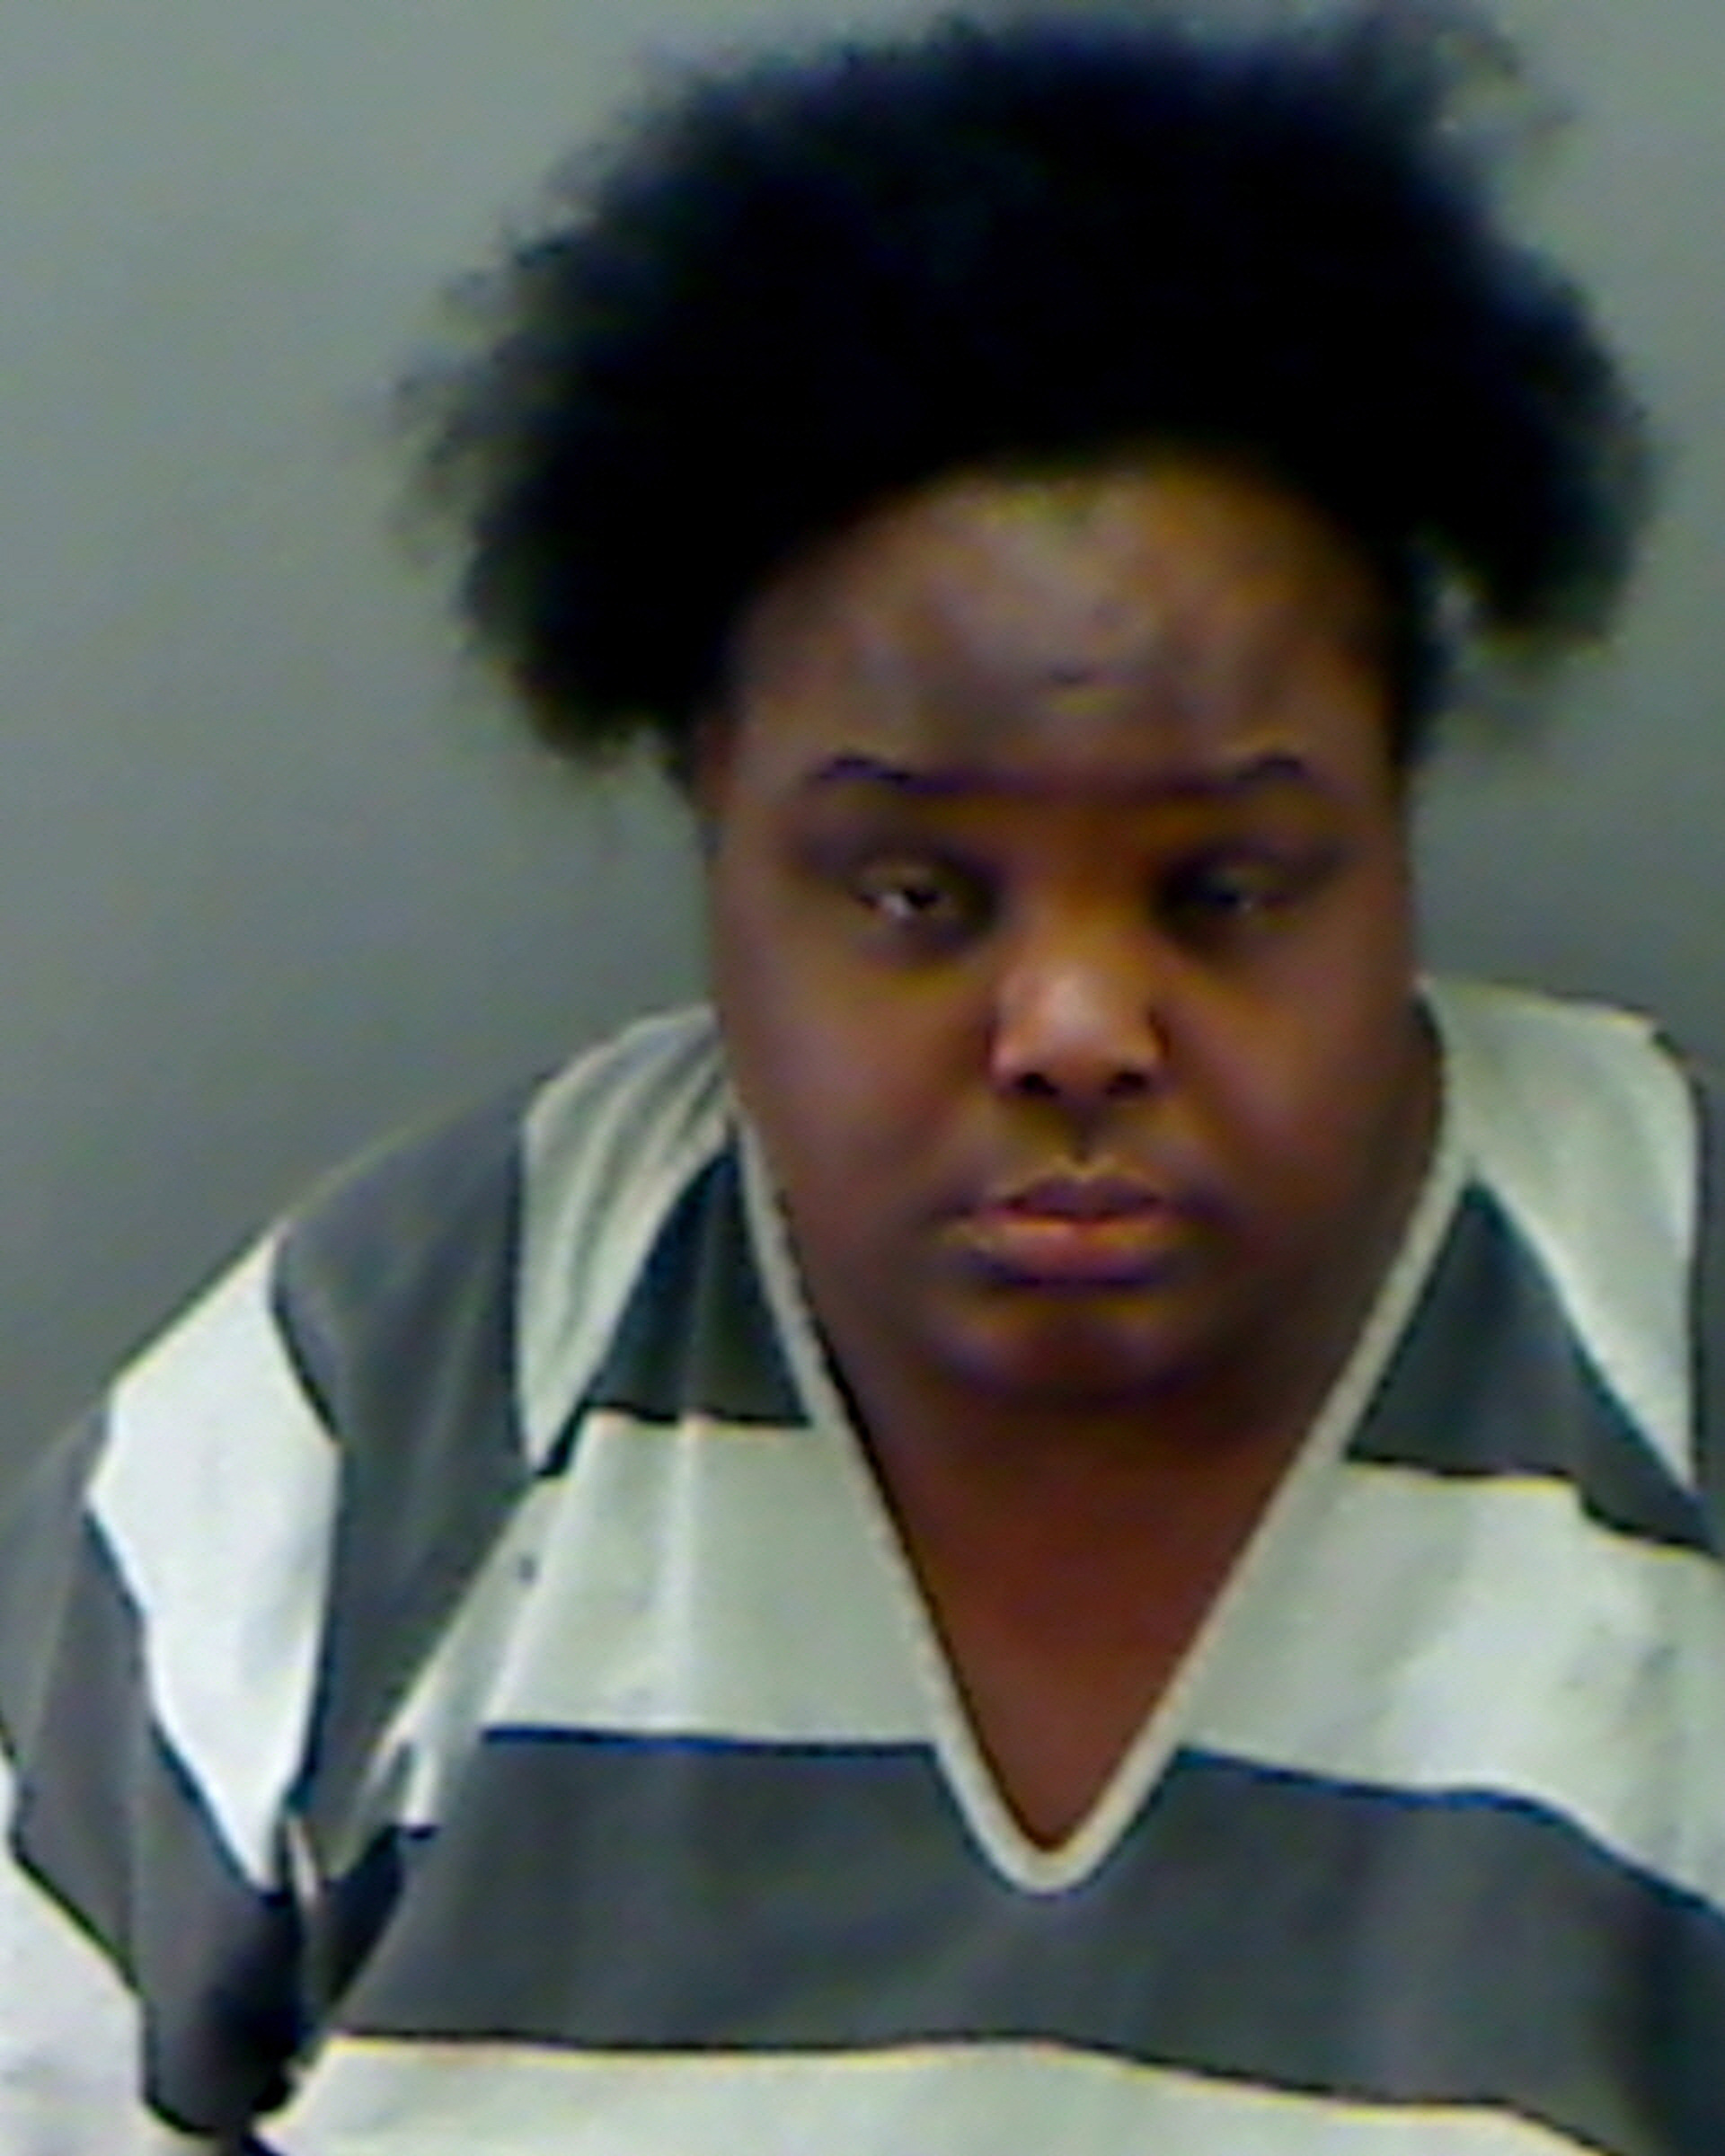 Charity Johnson, 34, is shown in this police booking photo provided by the Longview Police Department in Longview, Texas, on May 15, 2014